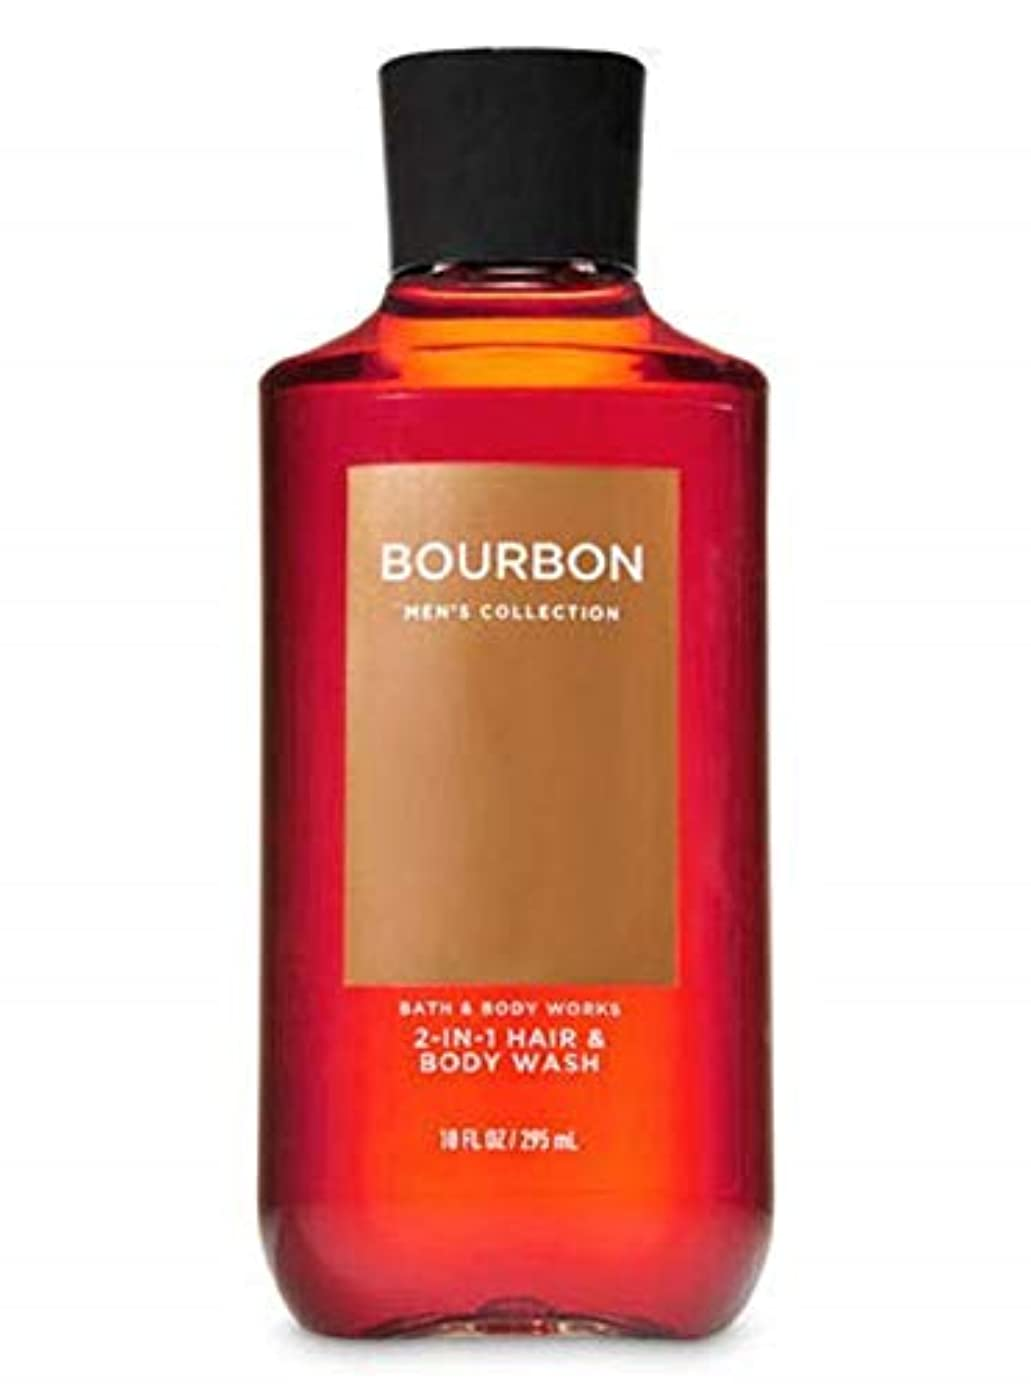 船尾使役ブラスト【並行輸入品】Bath & Body Works Bourbon 2-in-1 Hair + Body Wash 295 mL